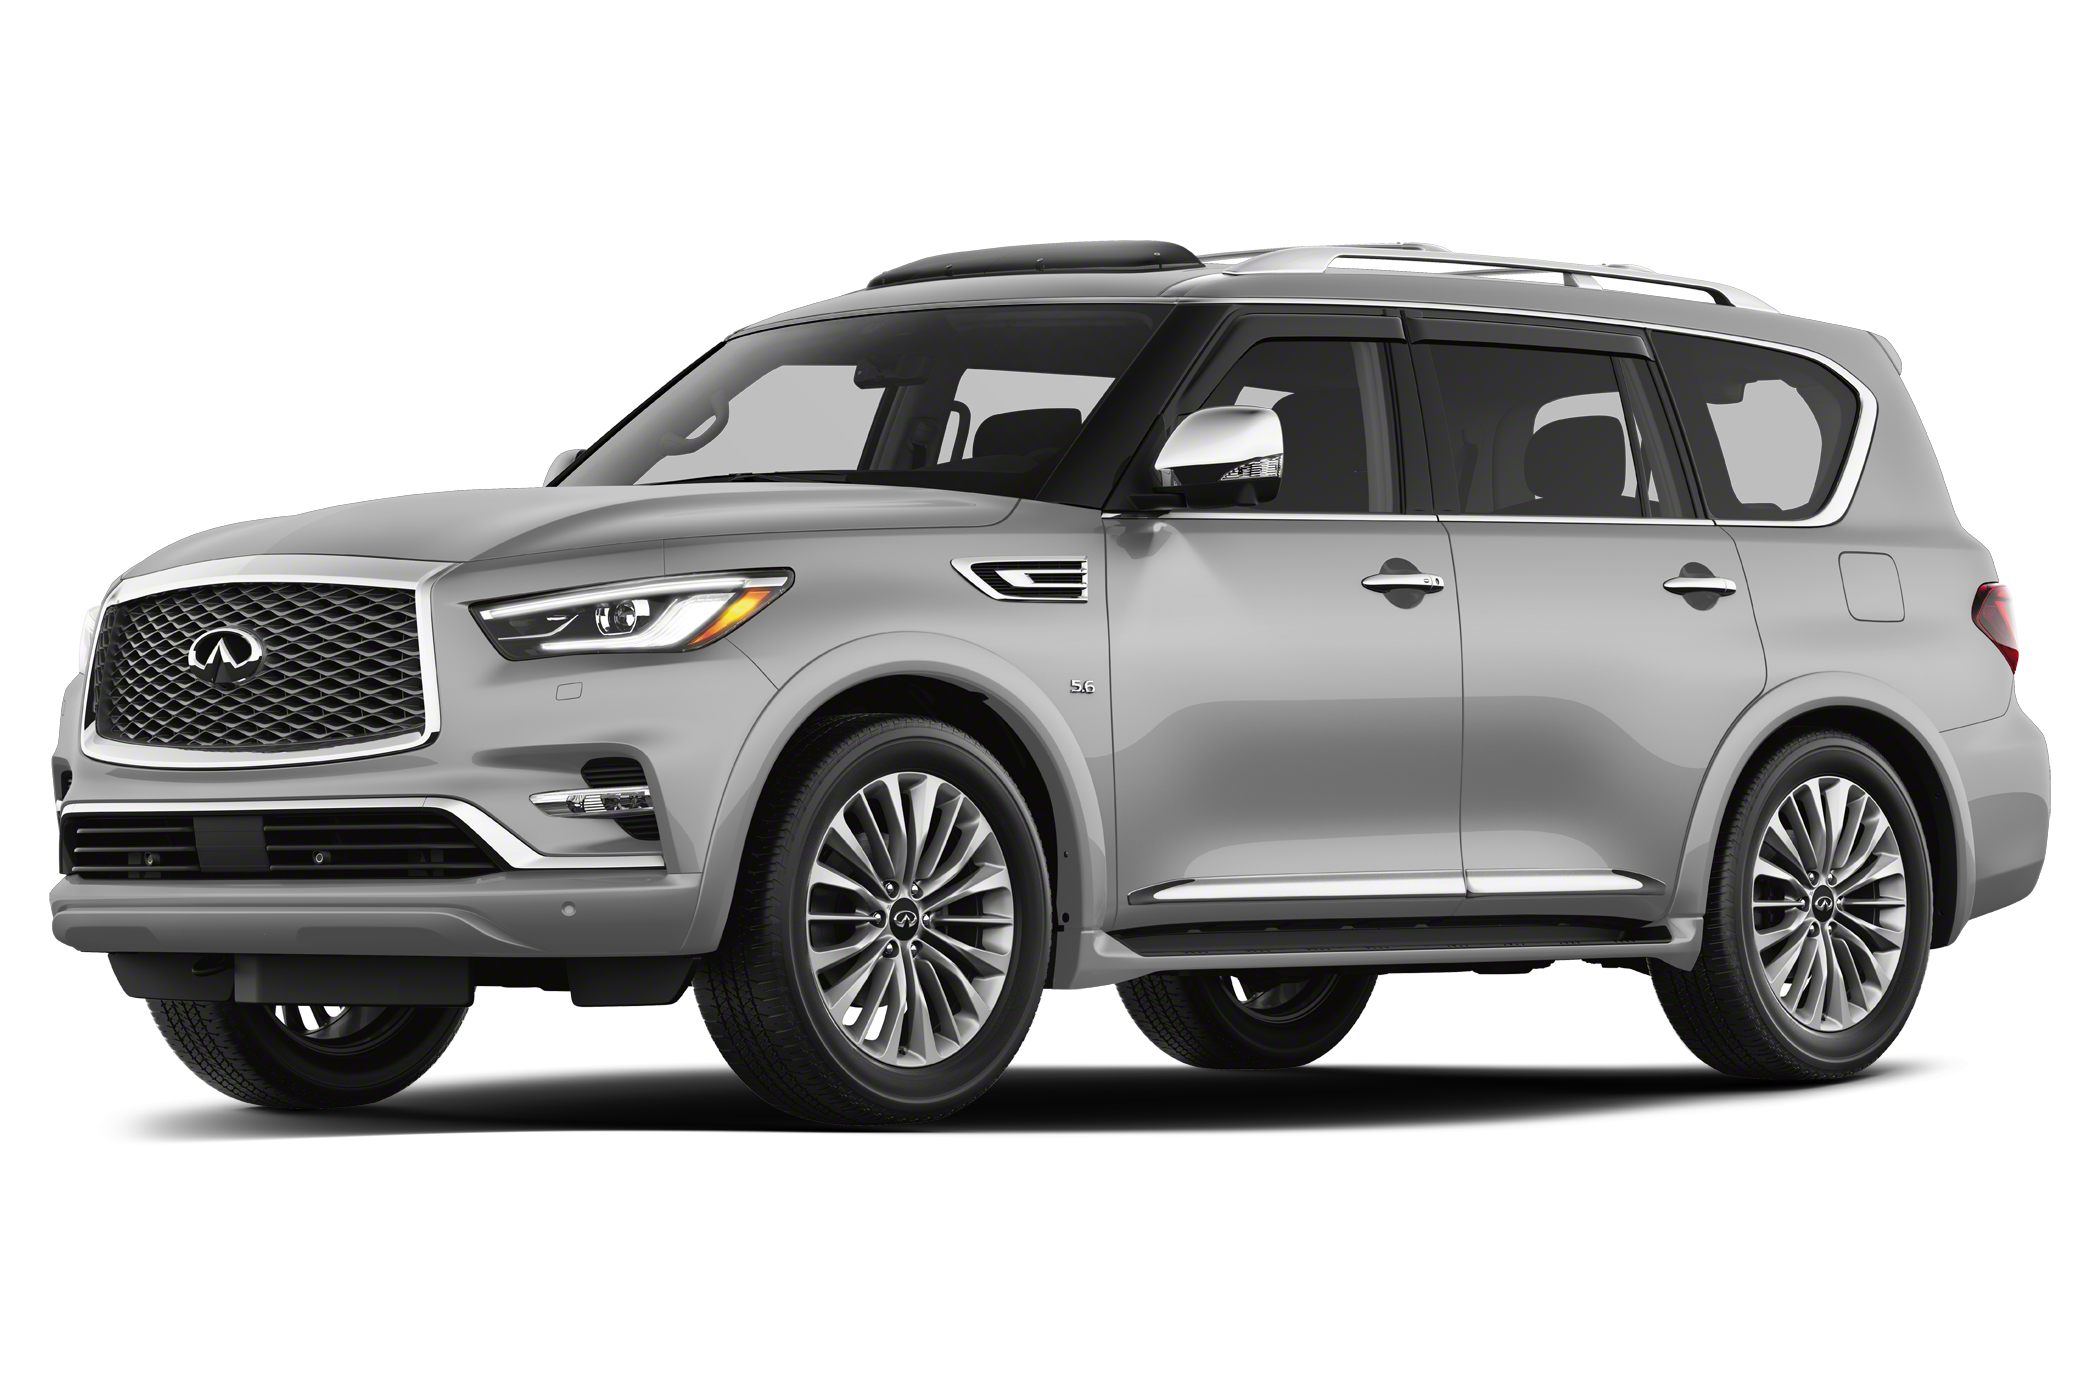 2018 Infiniti Qx80 Deals Prices Incentives Leases Overview